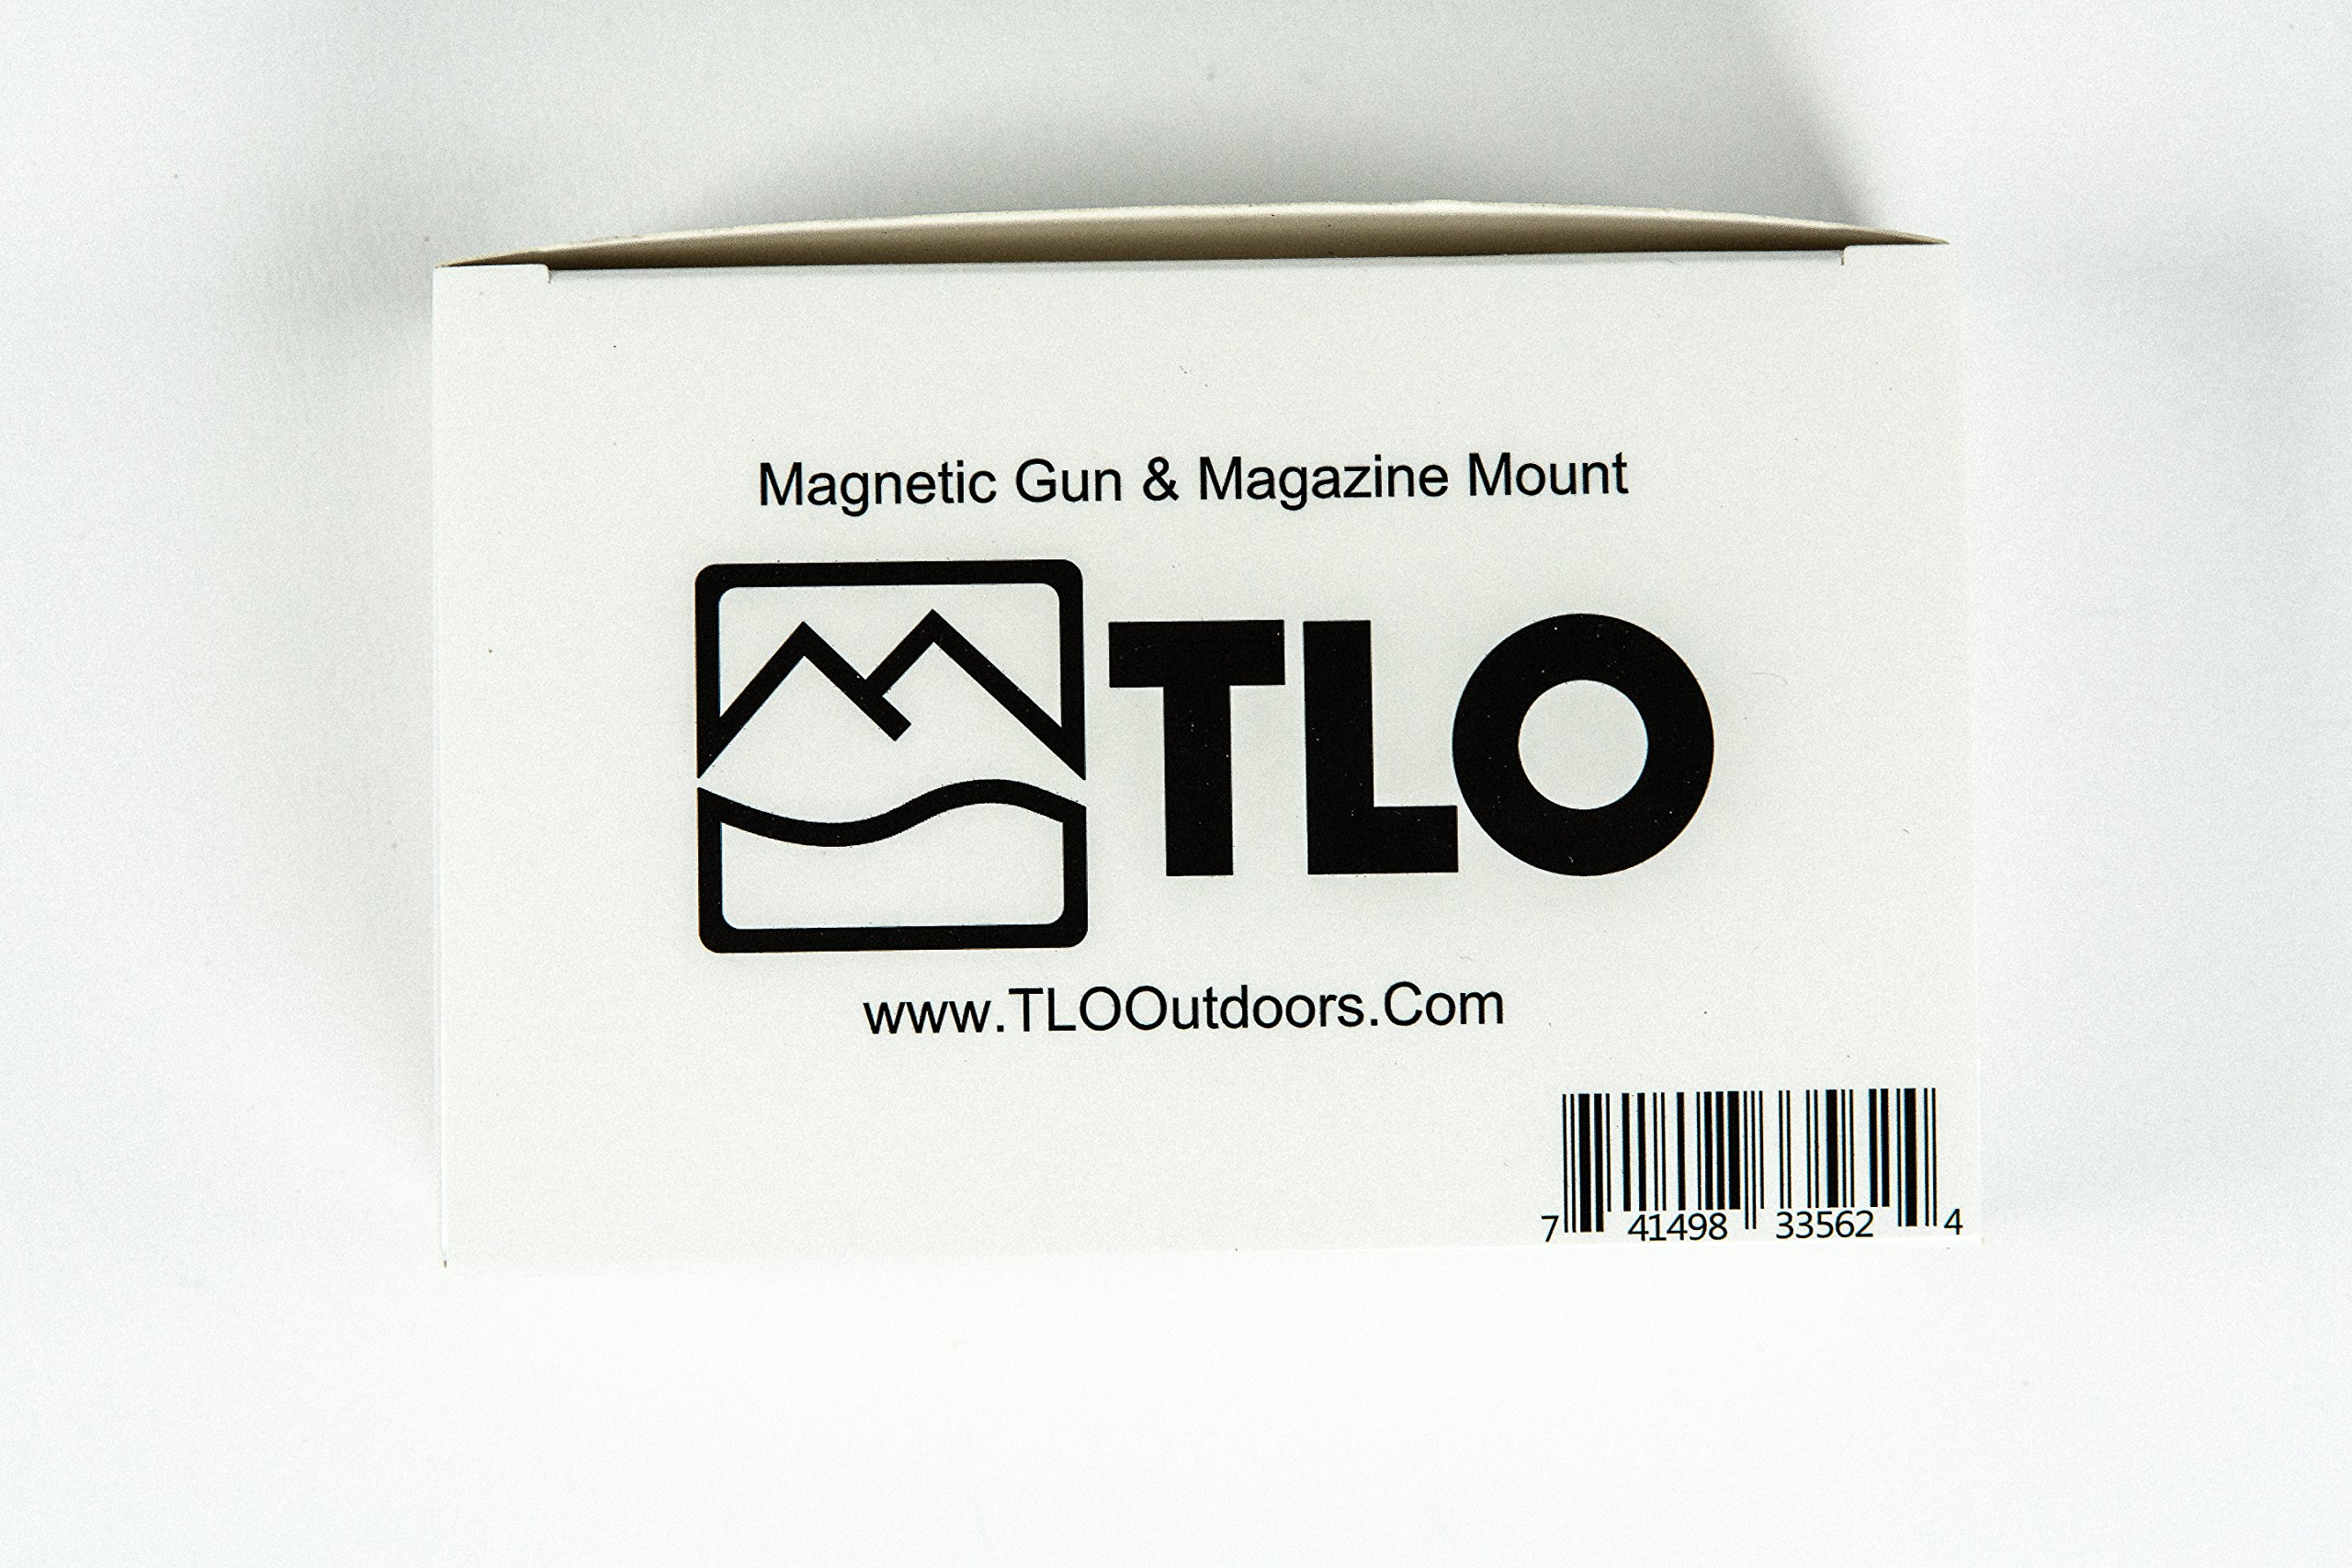 TLO Outdoors GunMag Gun Magnet [2-Pack] - Magnetic Gun Holster Mount for Car, Truck, Home, Office, Gun Safe with Exclusive Safety Cylinder by TLO Outdoors (Image #9)